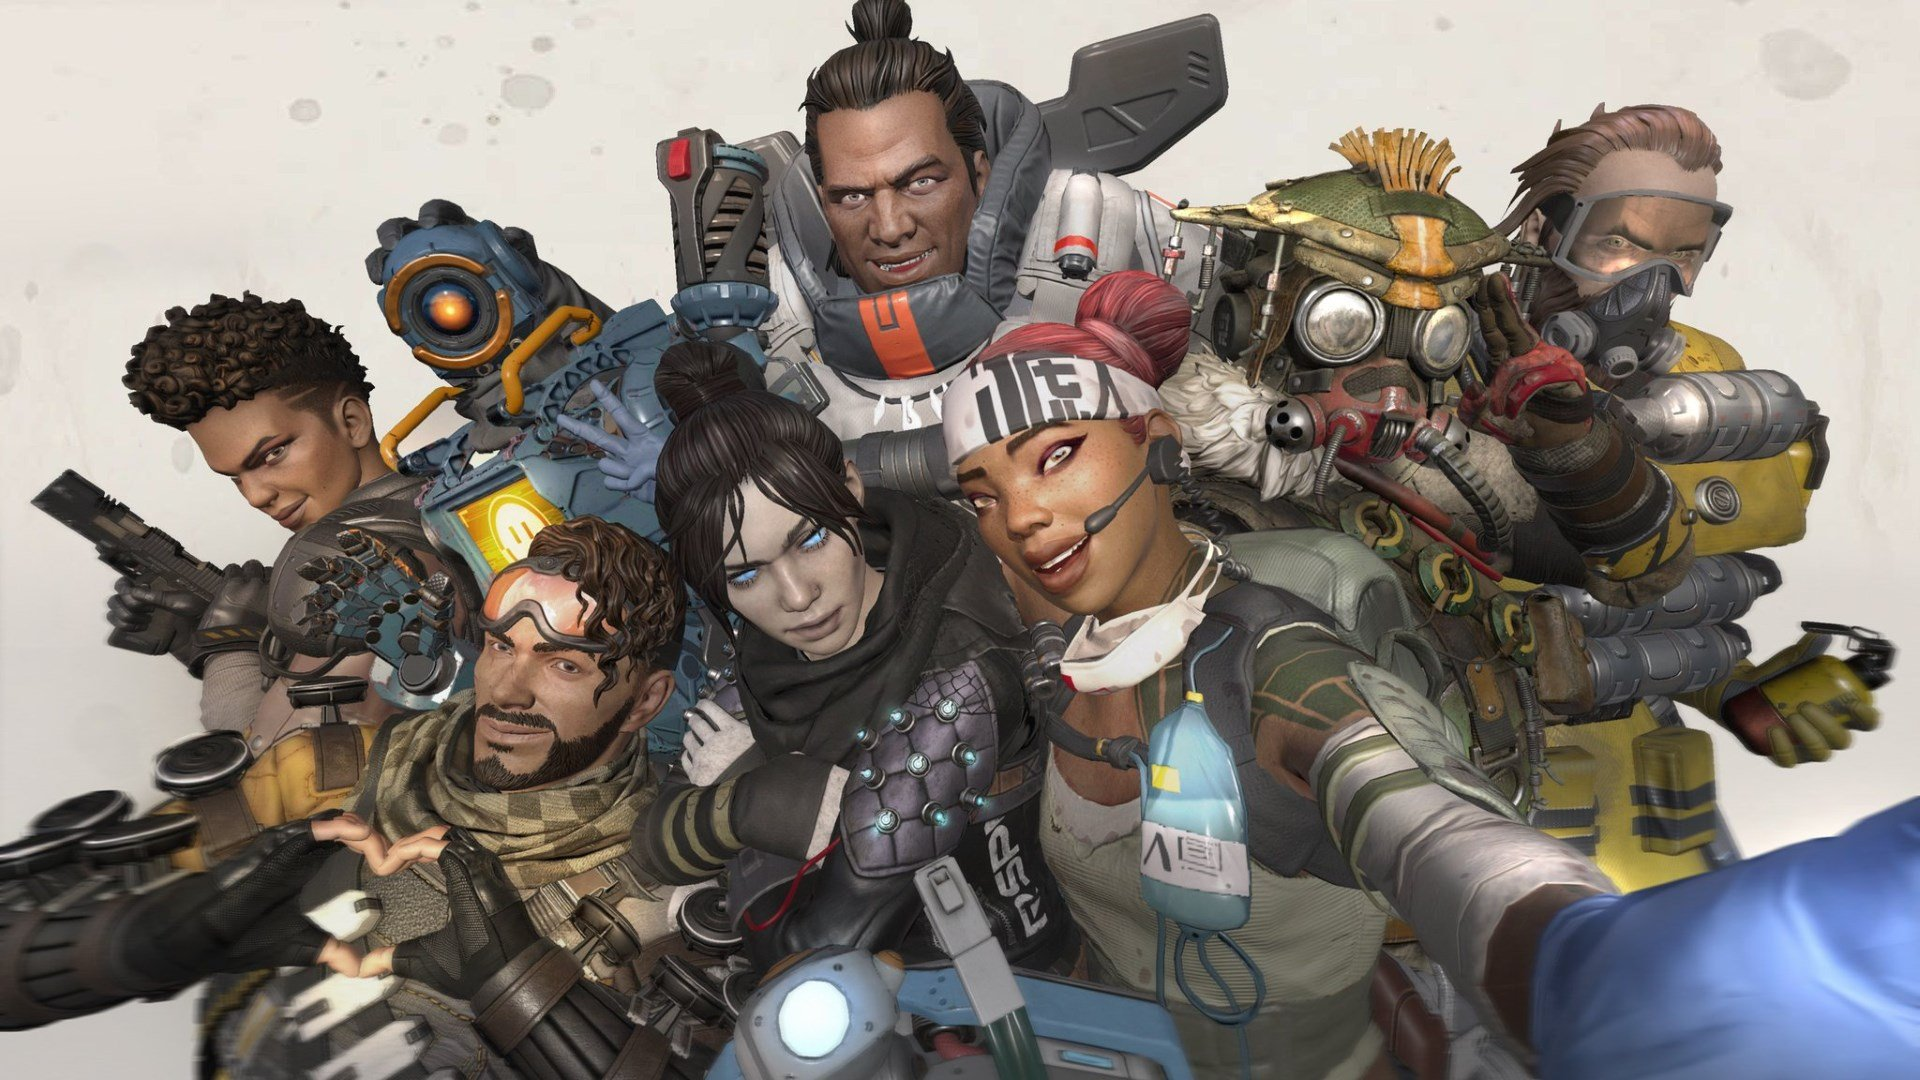 10 million players have already checked out Apex Legends.